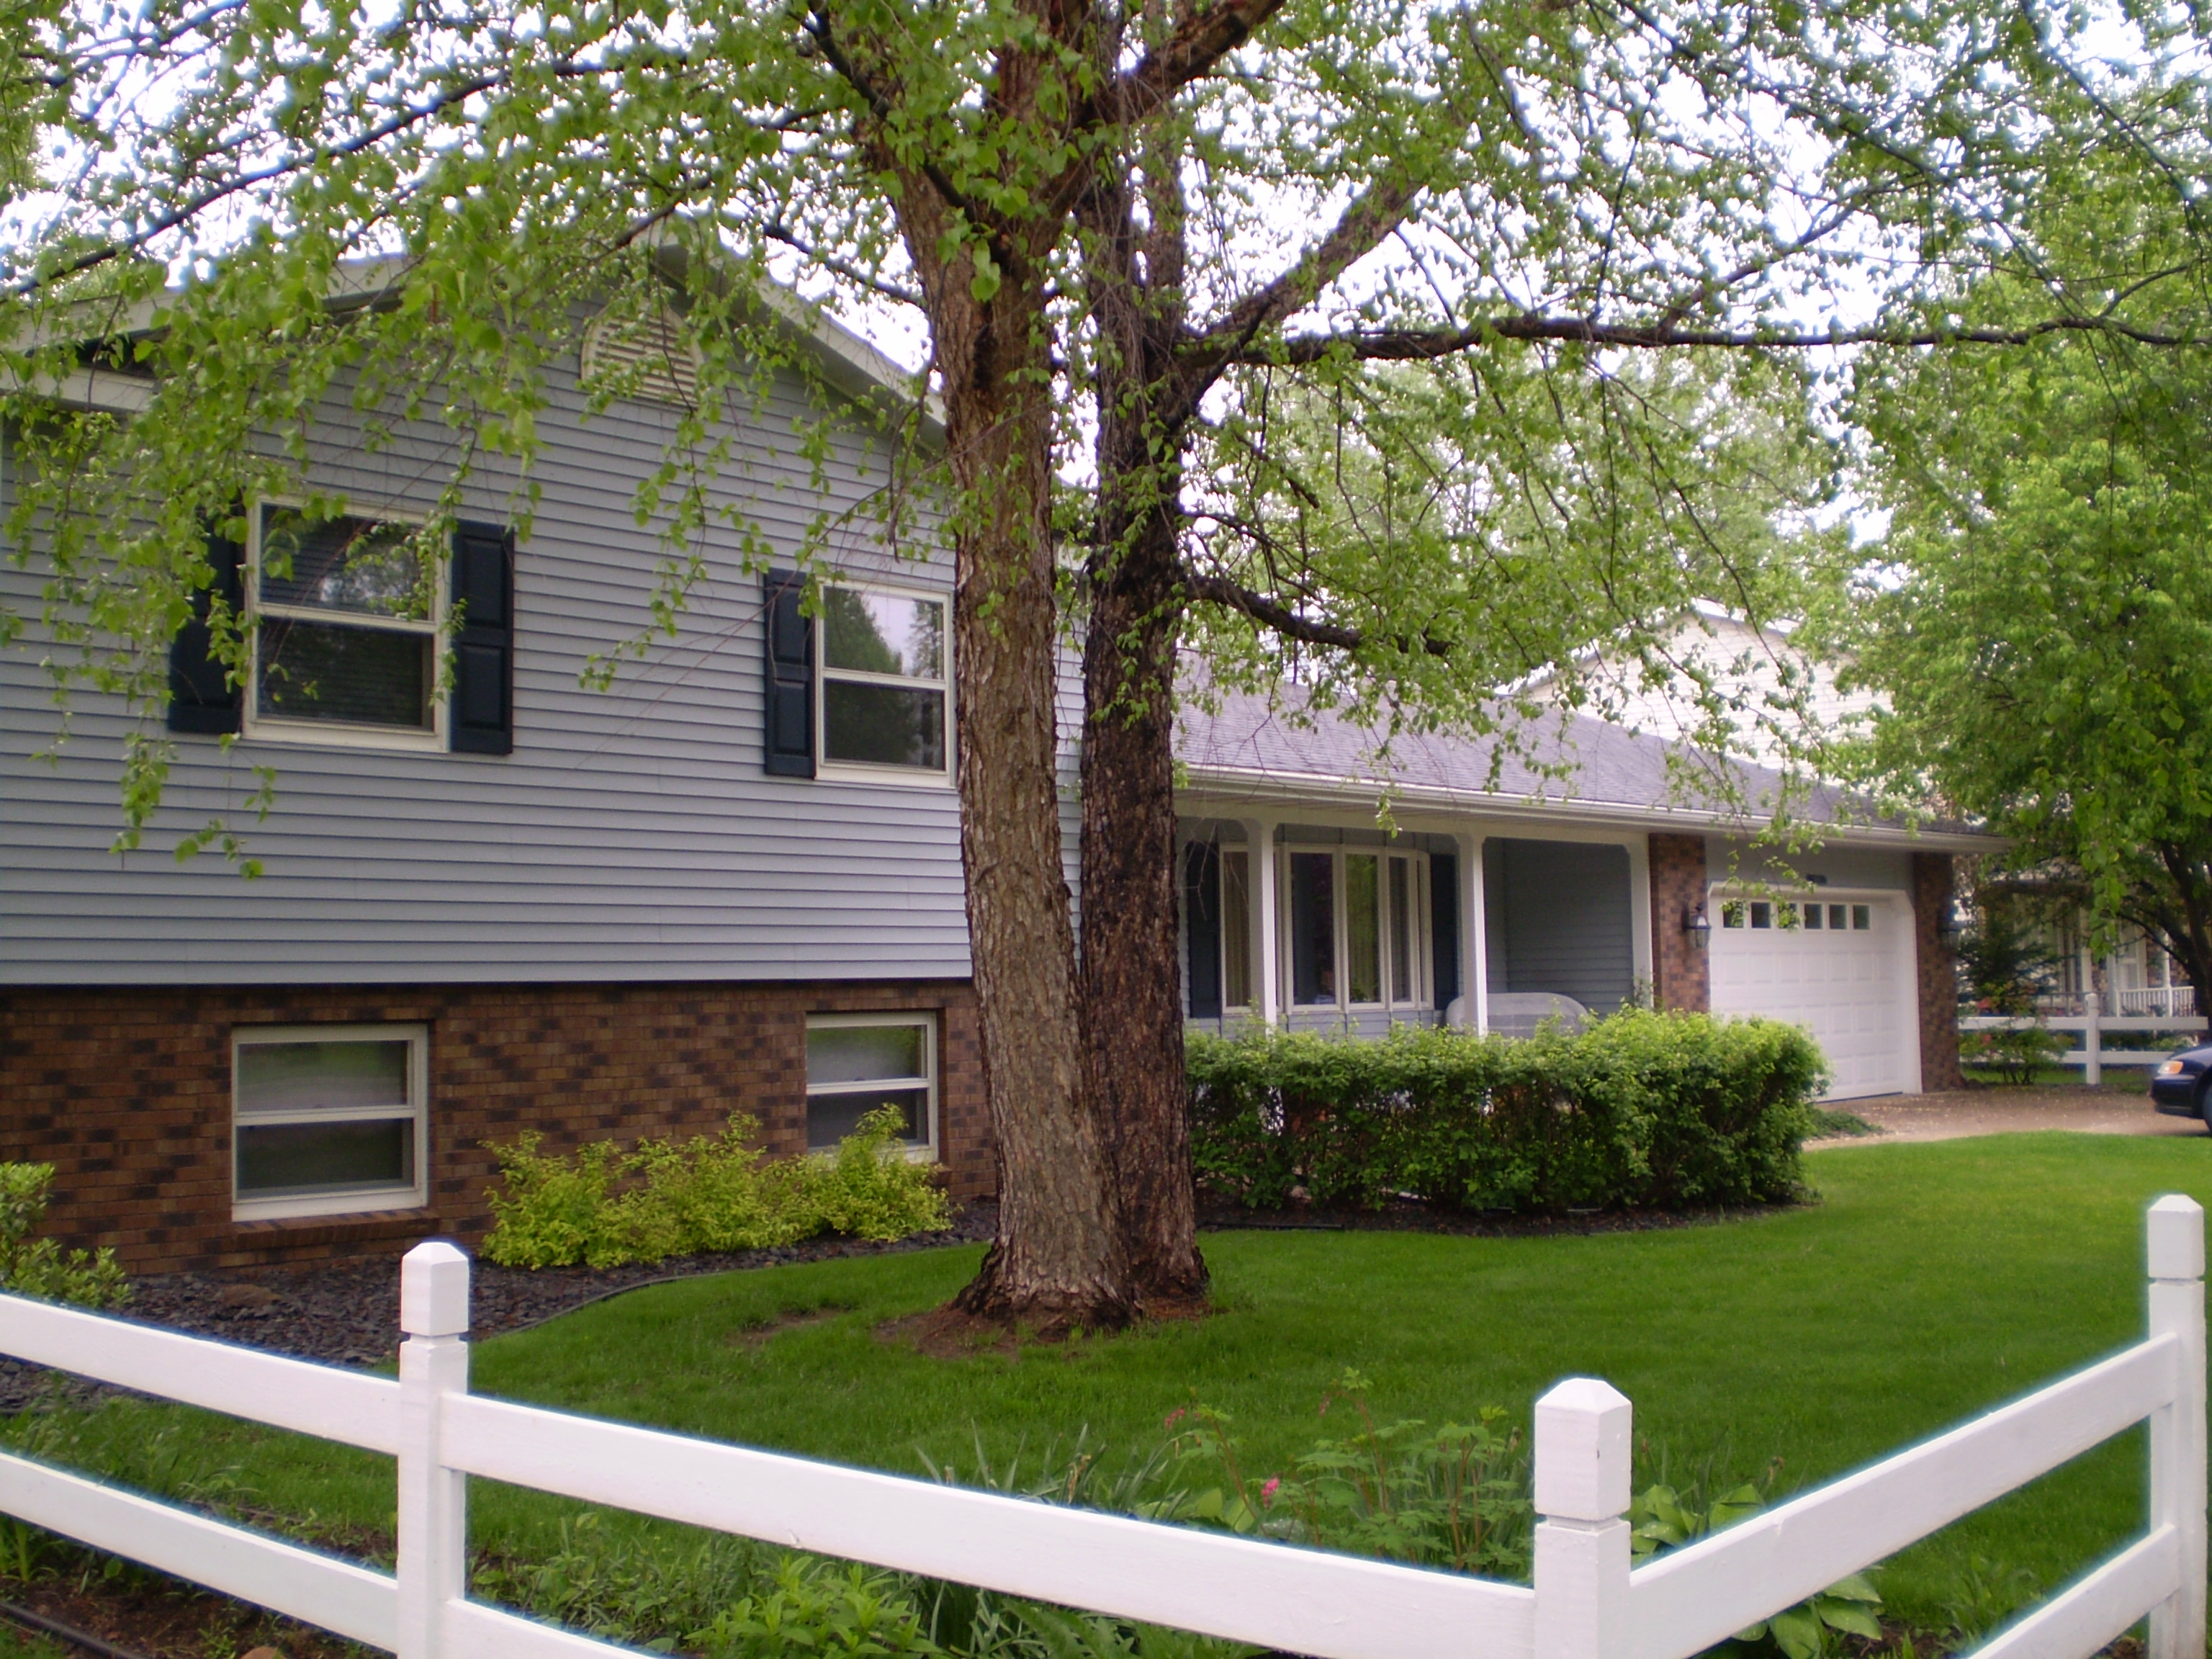 House styles 1980s 2008 for Homes pictures